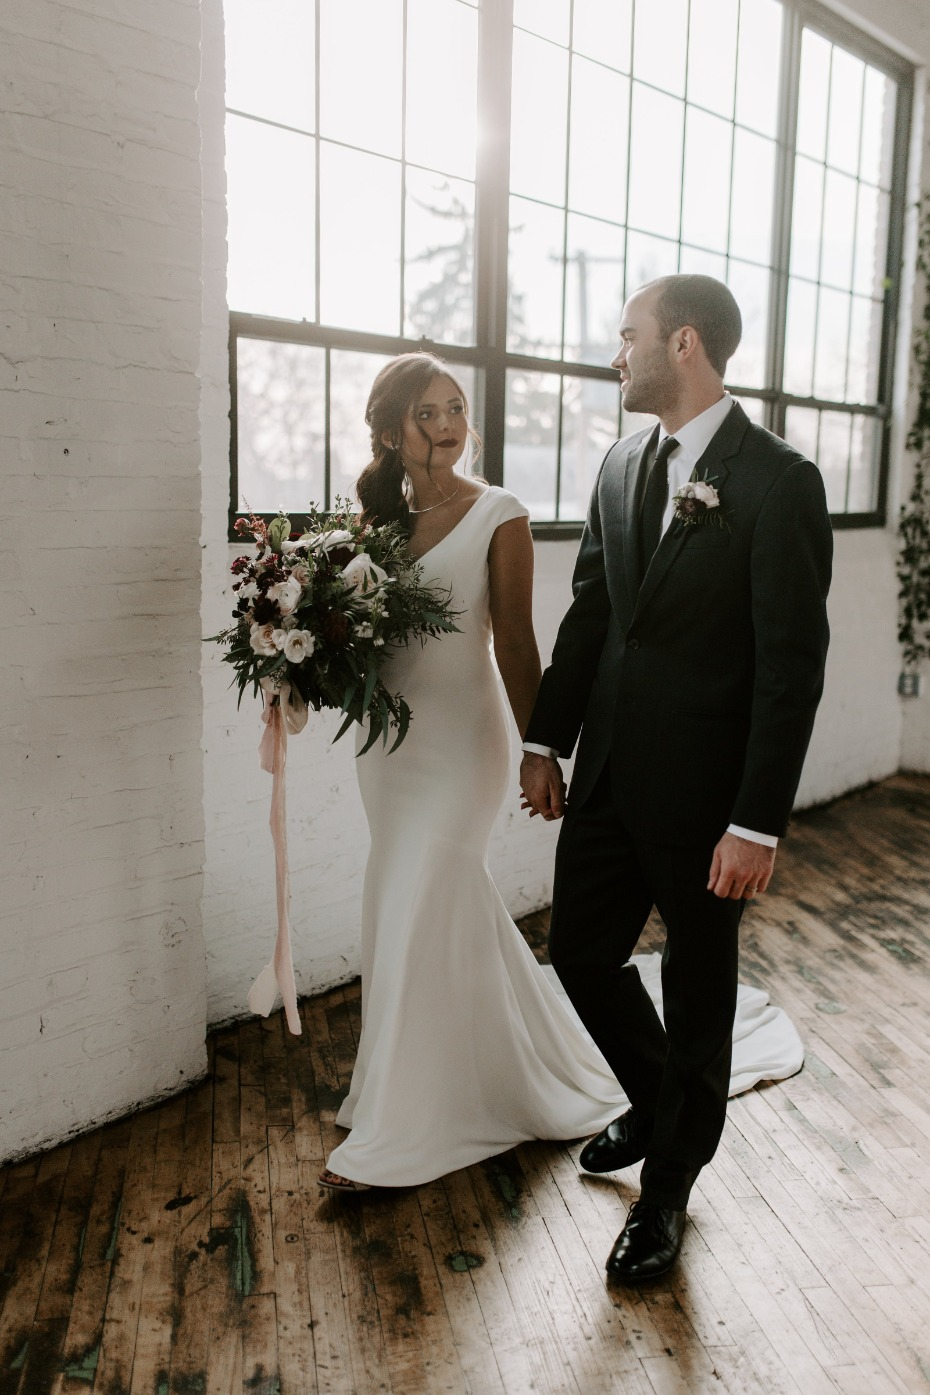 Couple walking into their reception Photo by mikayla-herrick